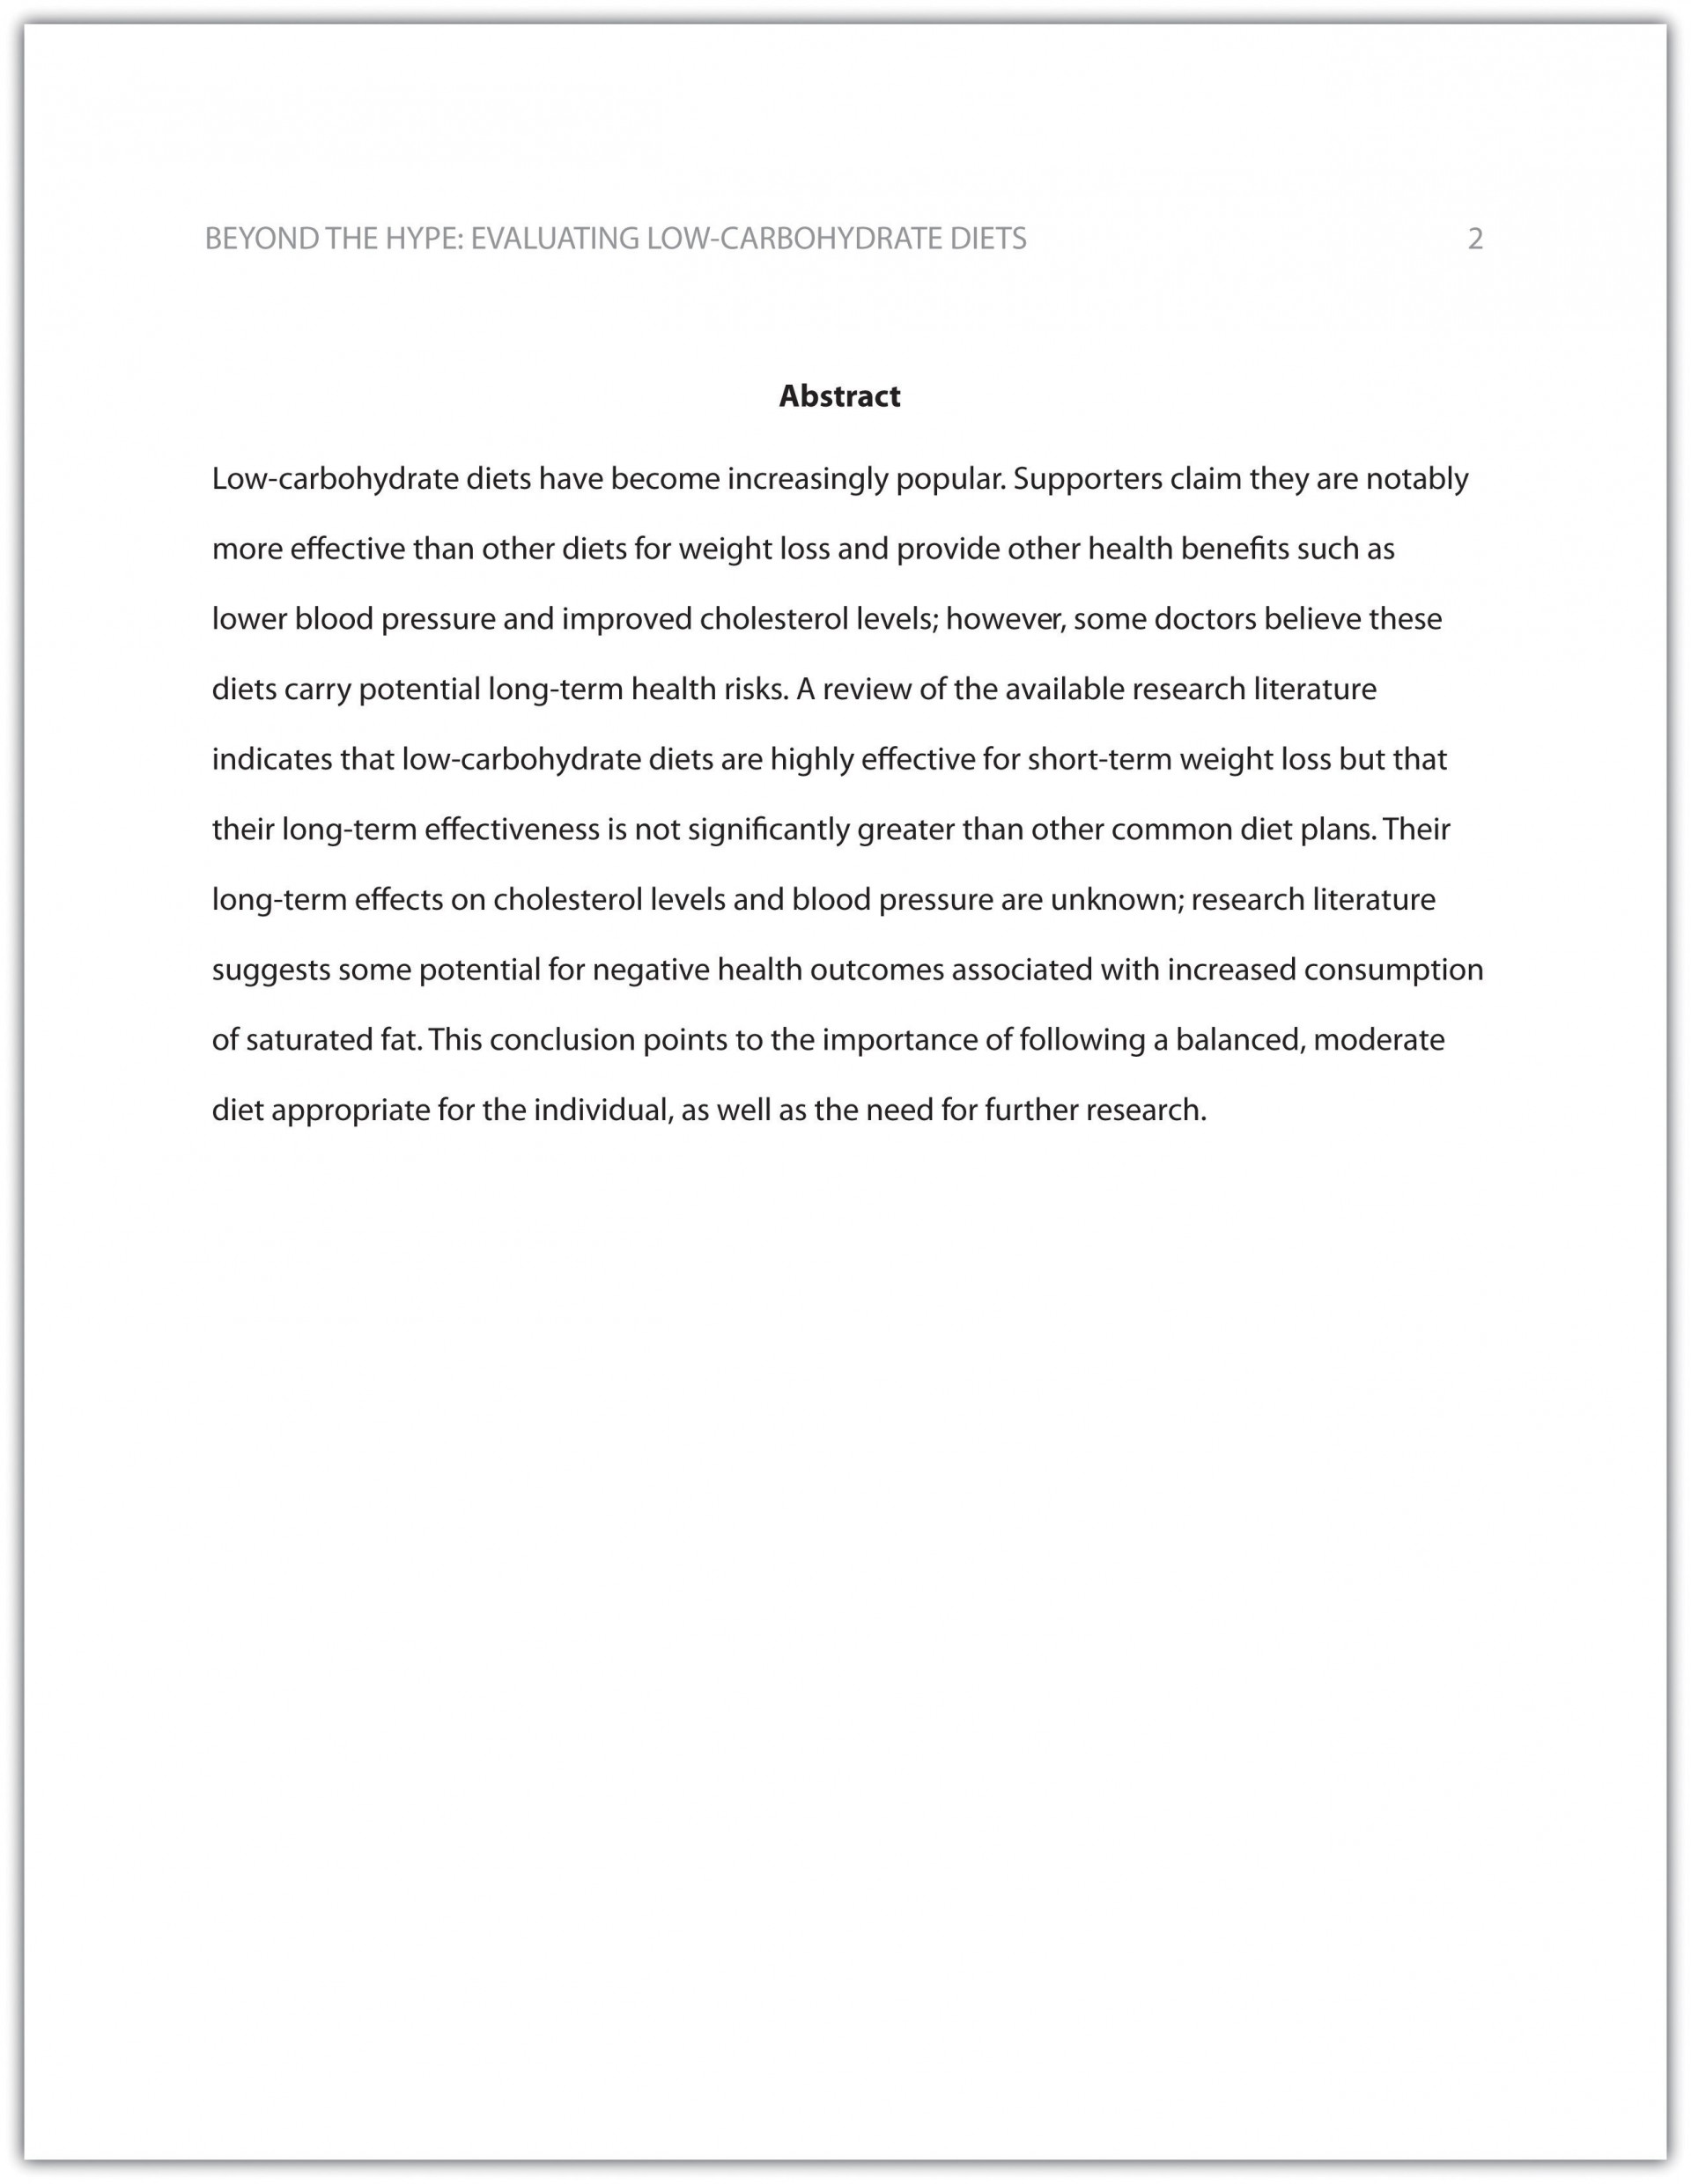 014 Research Paper College English Incredible Ideas 1920